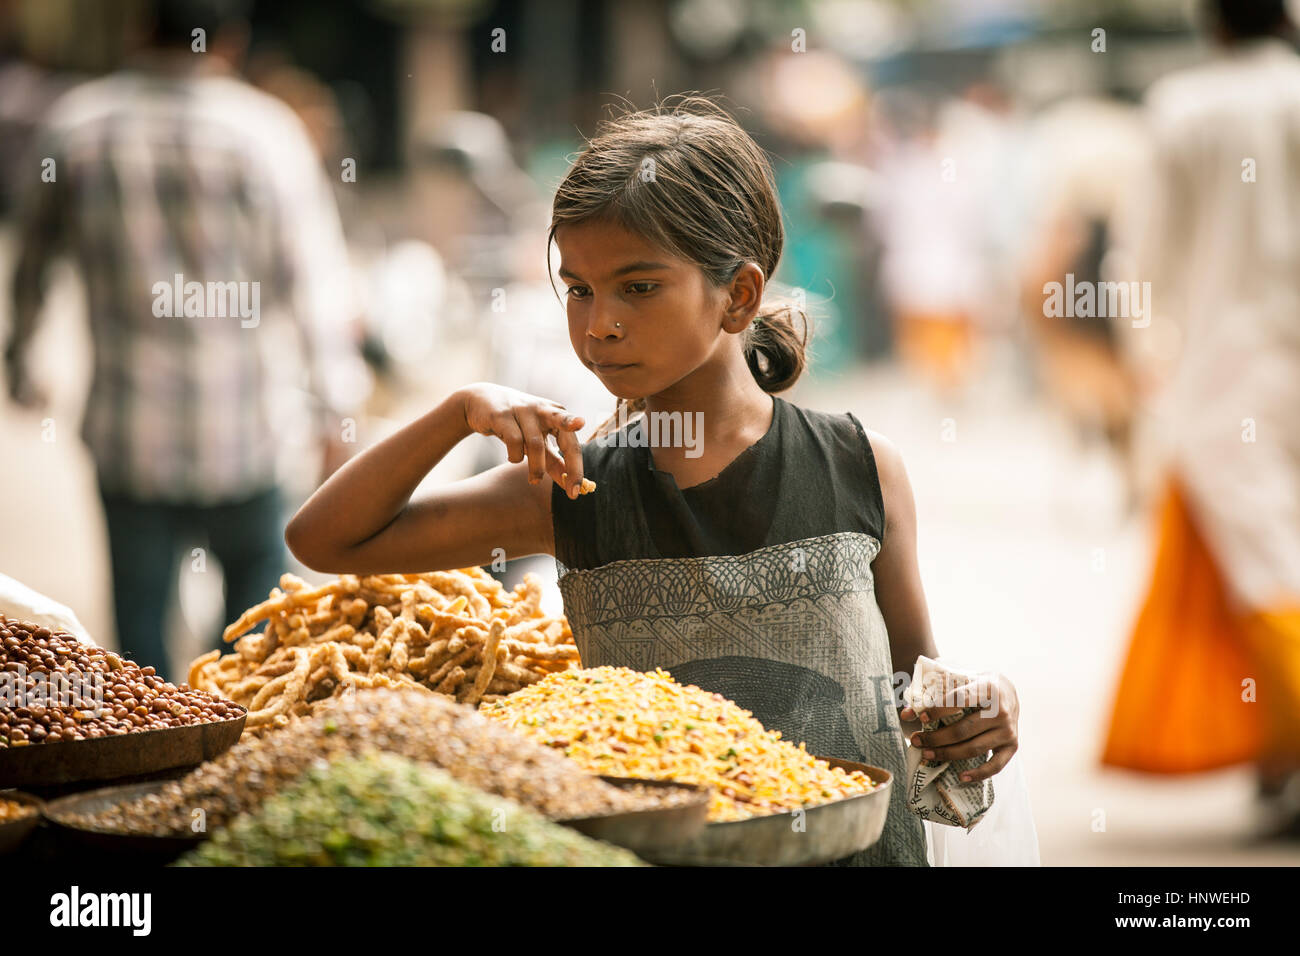 Rishikesh, India - September 23,2014: Indian girl buying sweets from the street stall in Rishikesh, India on September - Stock Image